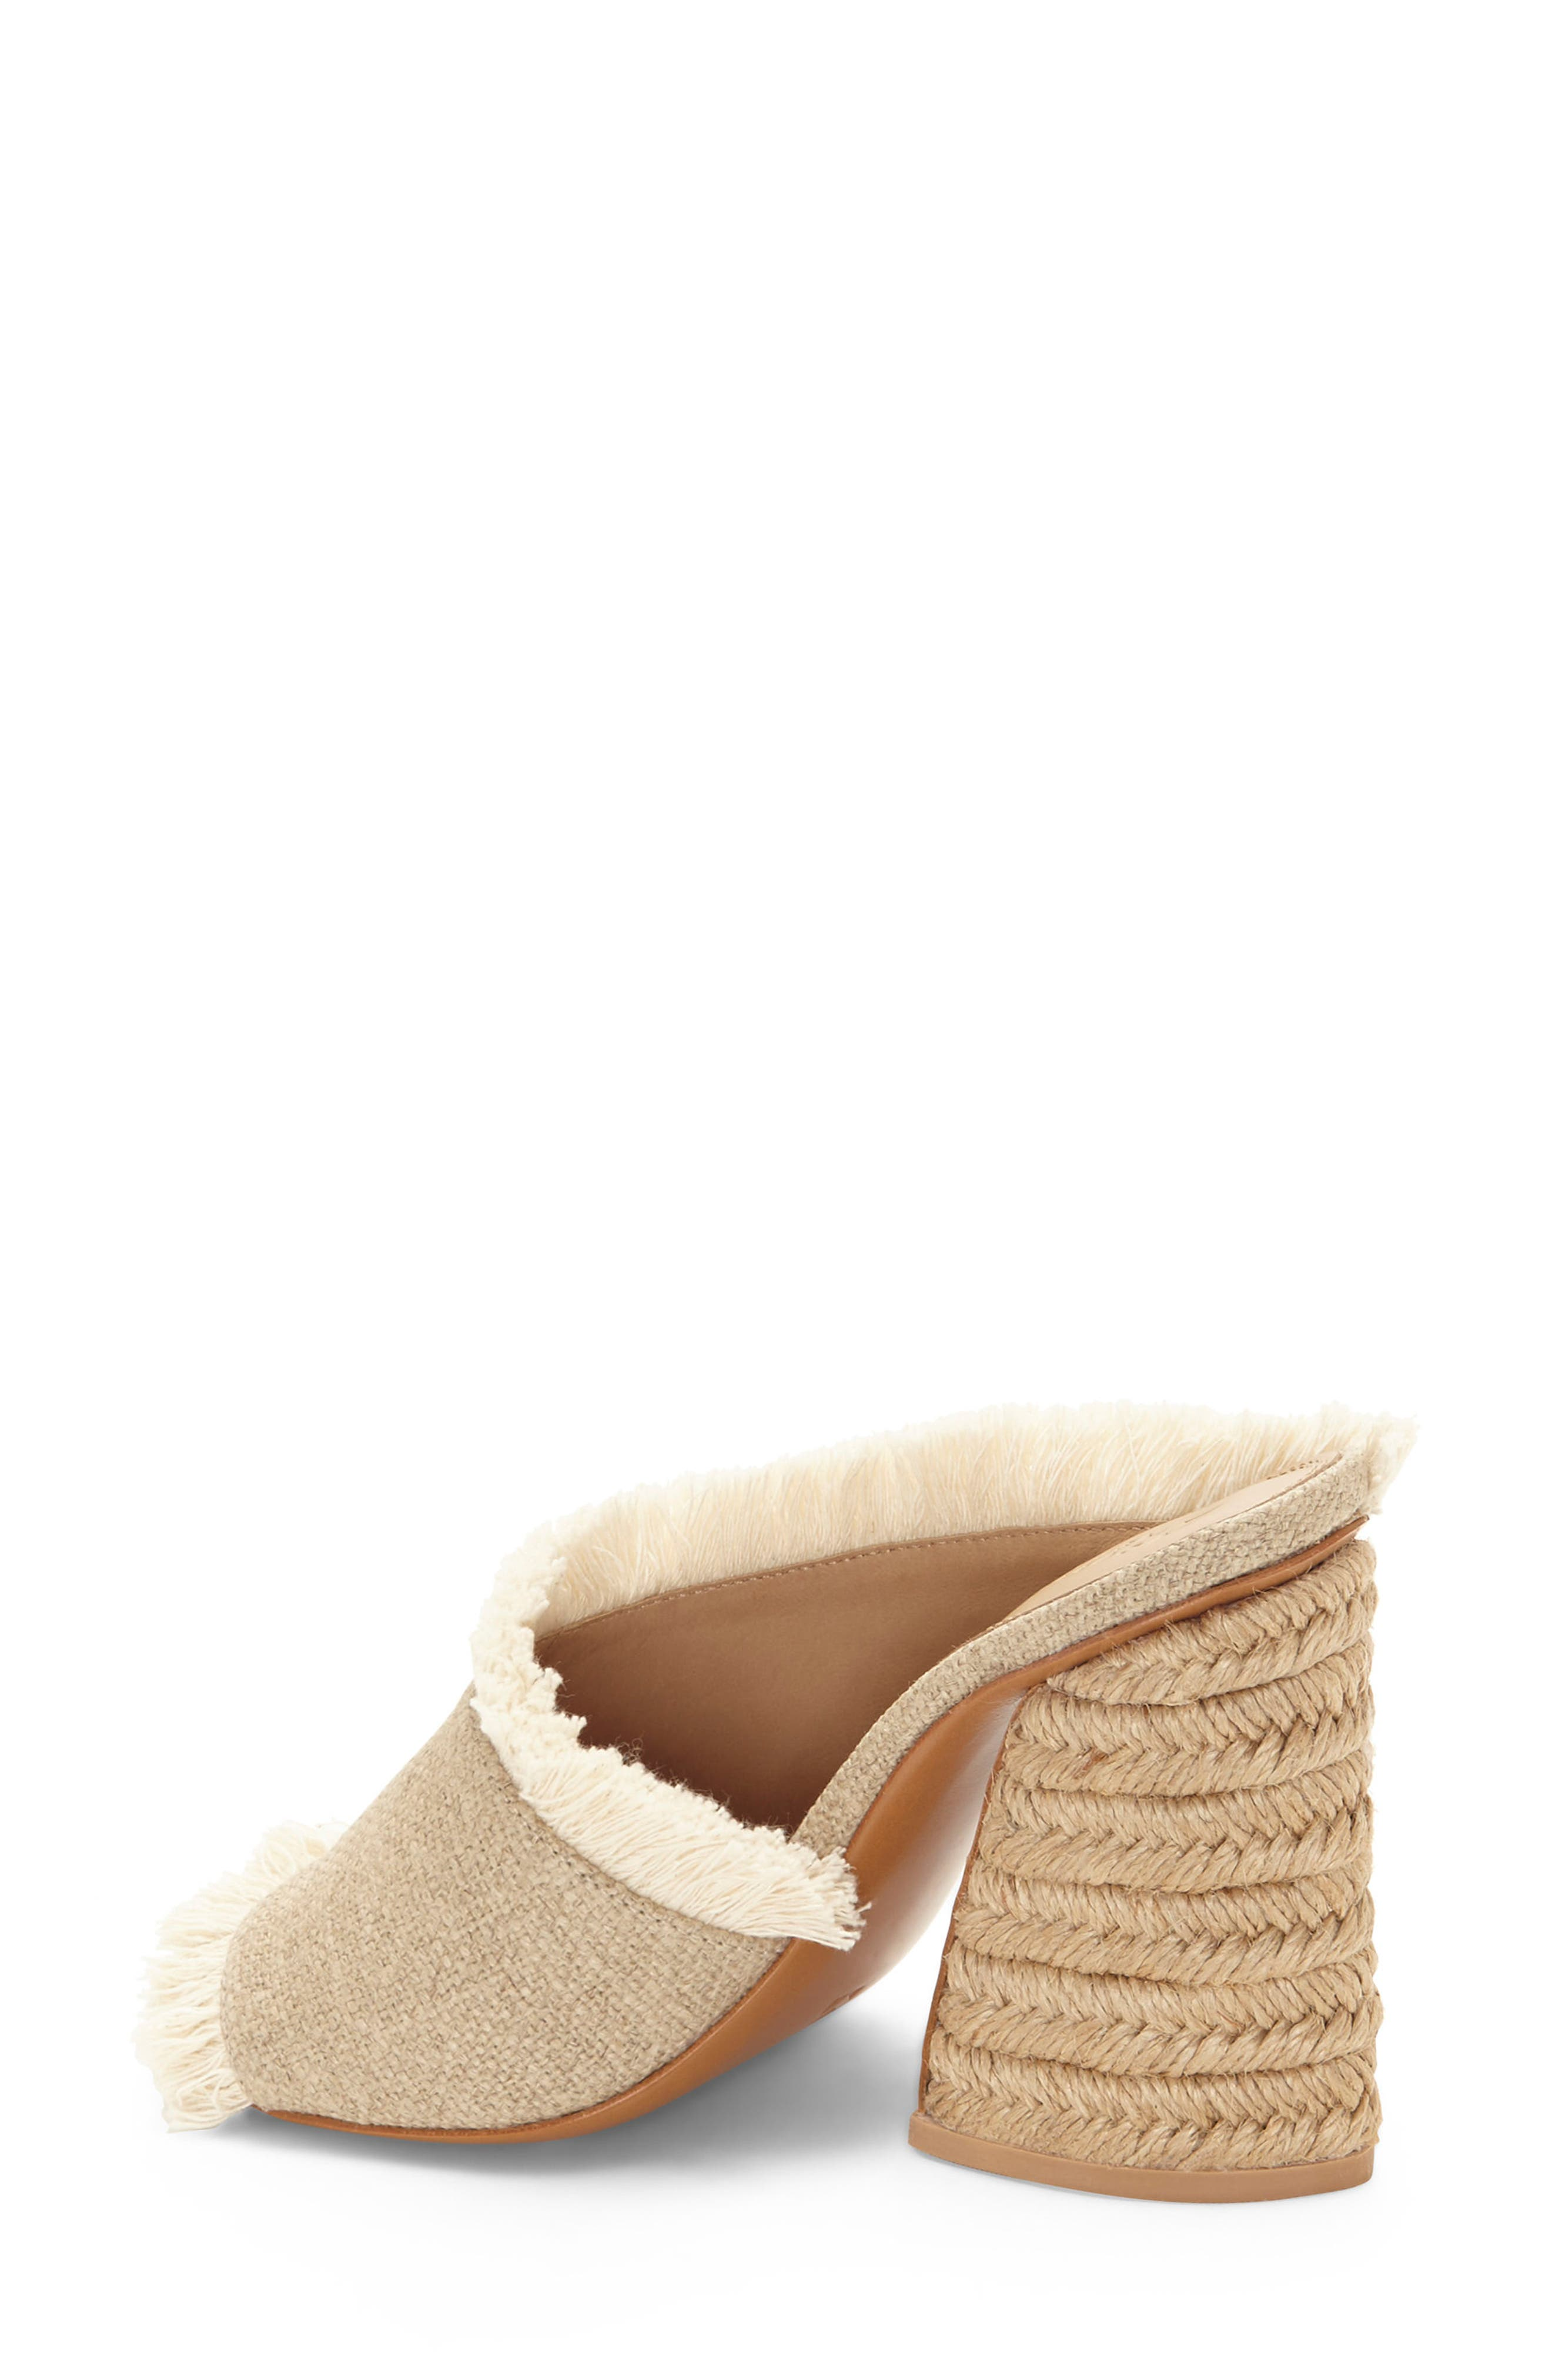 Izar Fringe Asymmetrical Sandal,                             Alternate thumbnail 2, color,                             Natural